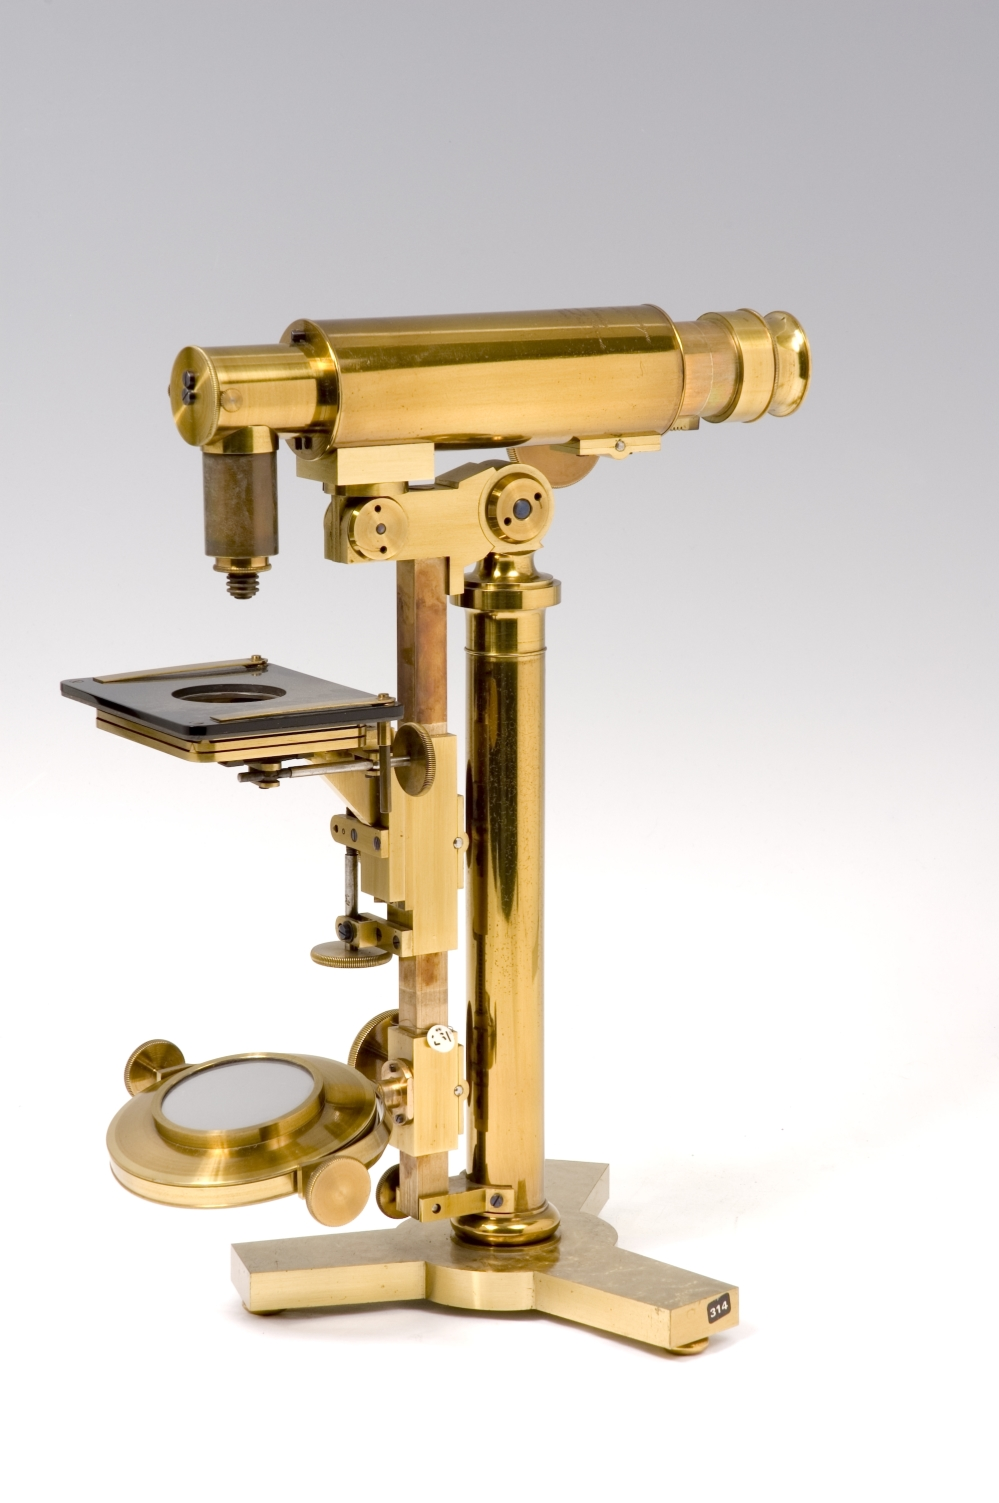 preview image for Compound Microscope with Accessories, by C. Chevalier, Paris, c. 1840-50